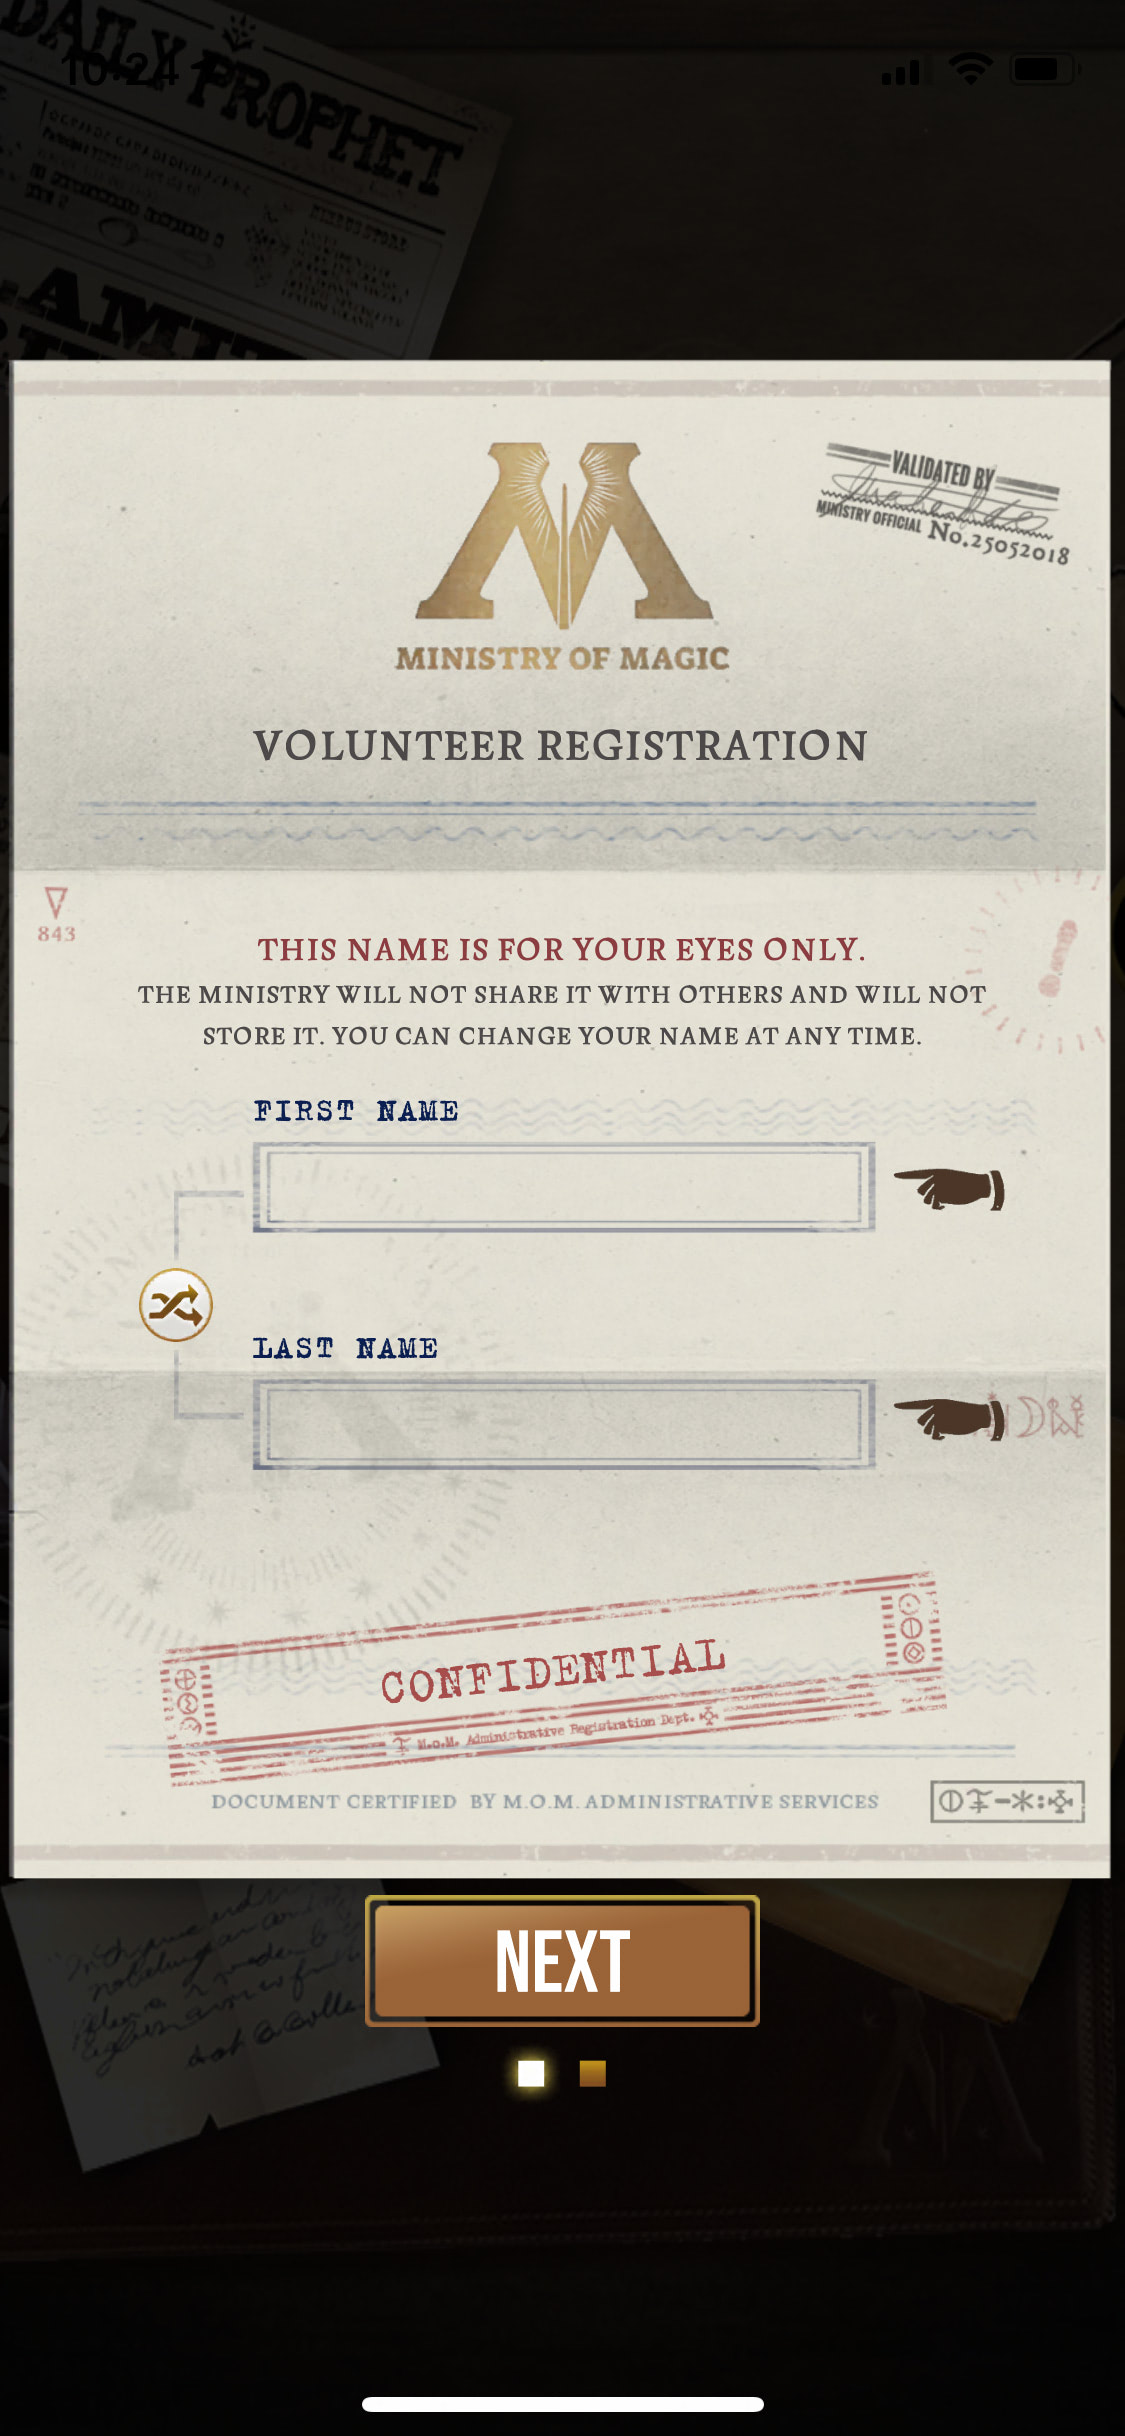 Volunteer registration (Wizards Unite)